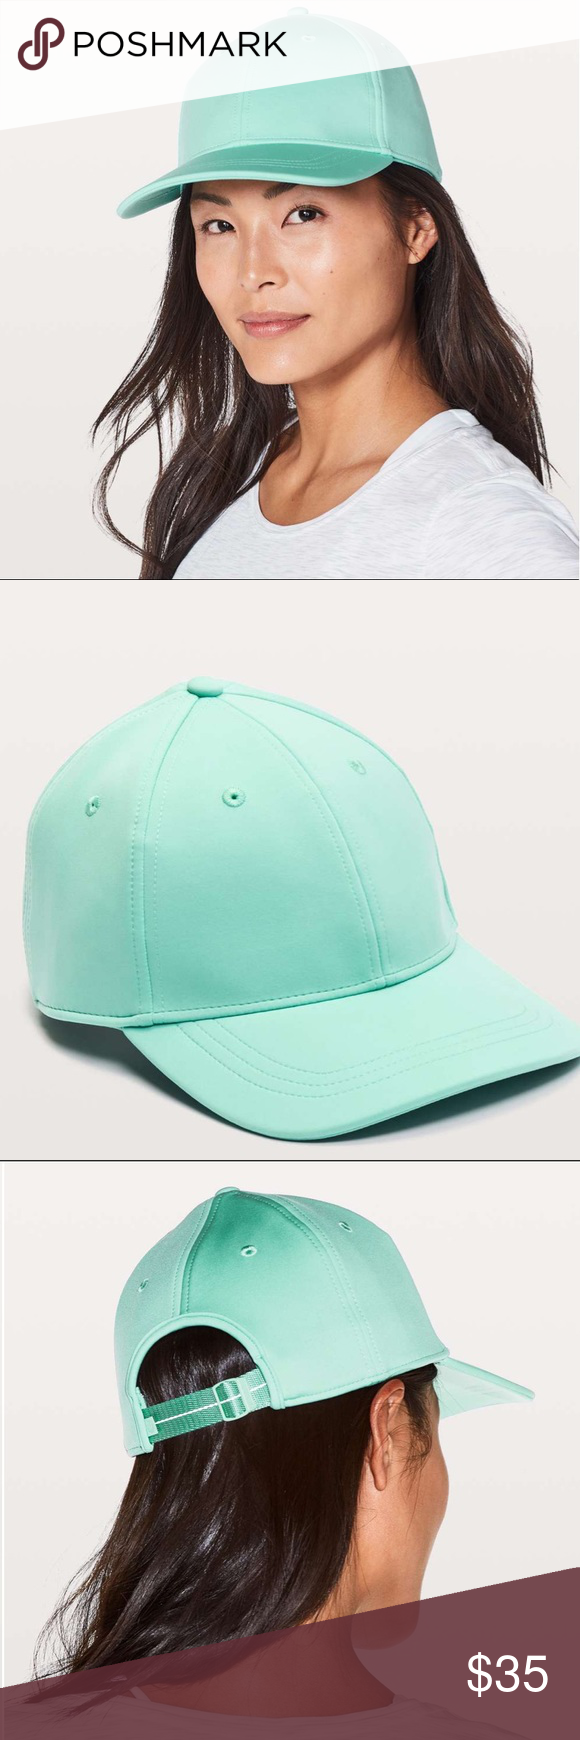 8c859a87 Lululemon Baller Hat in Washed Marsh Lululemon Baller Hat in Washed Marsh  We designed this breathable, wicking ball cap to take you from morning yoga  to ...